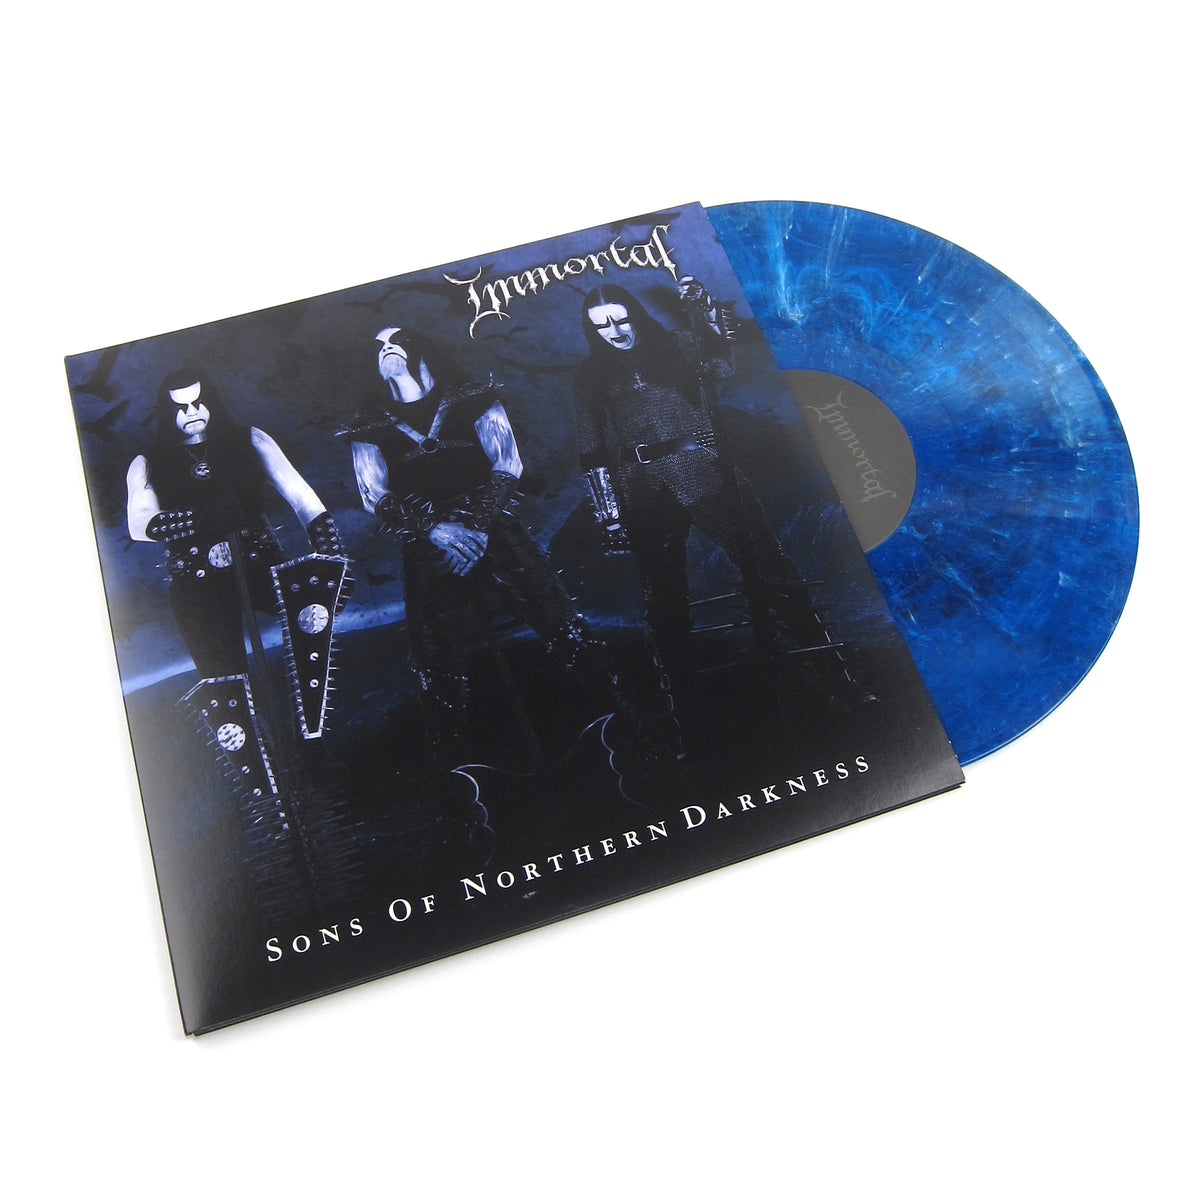 Immortal: Sons of Northern Darkness (Colored Vinyl) Vinyl 2LP